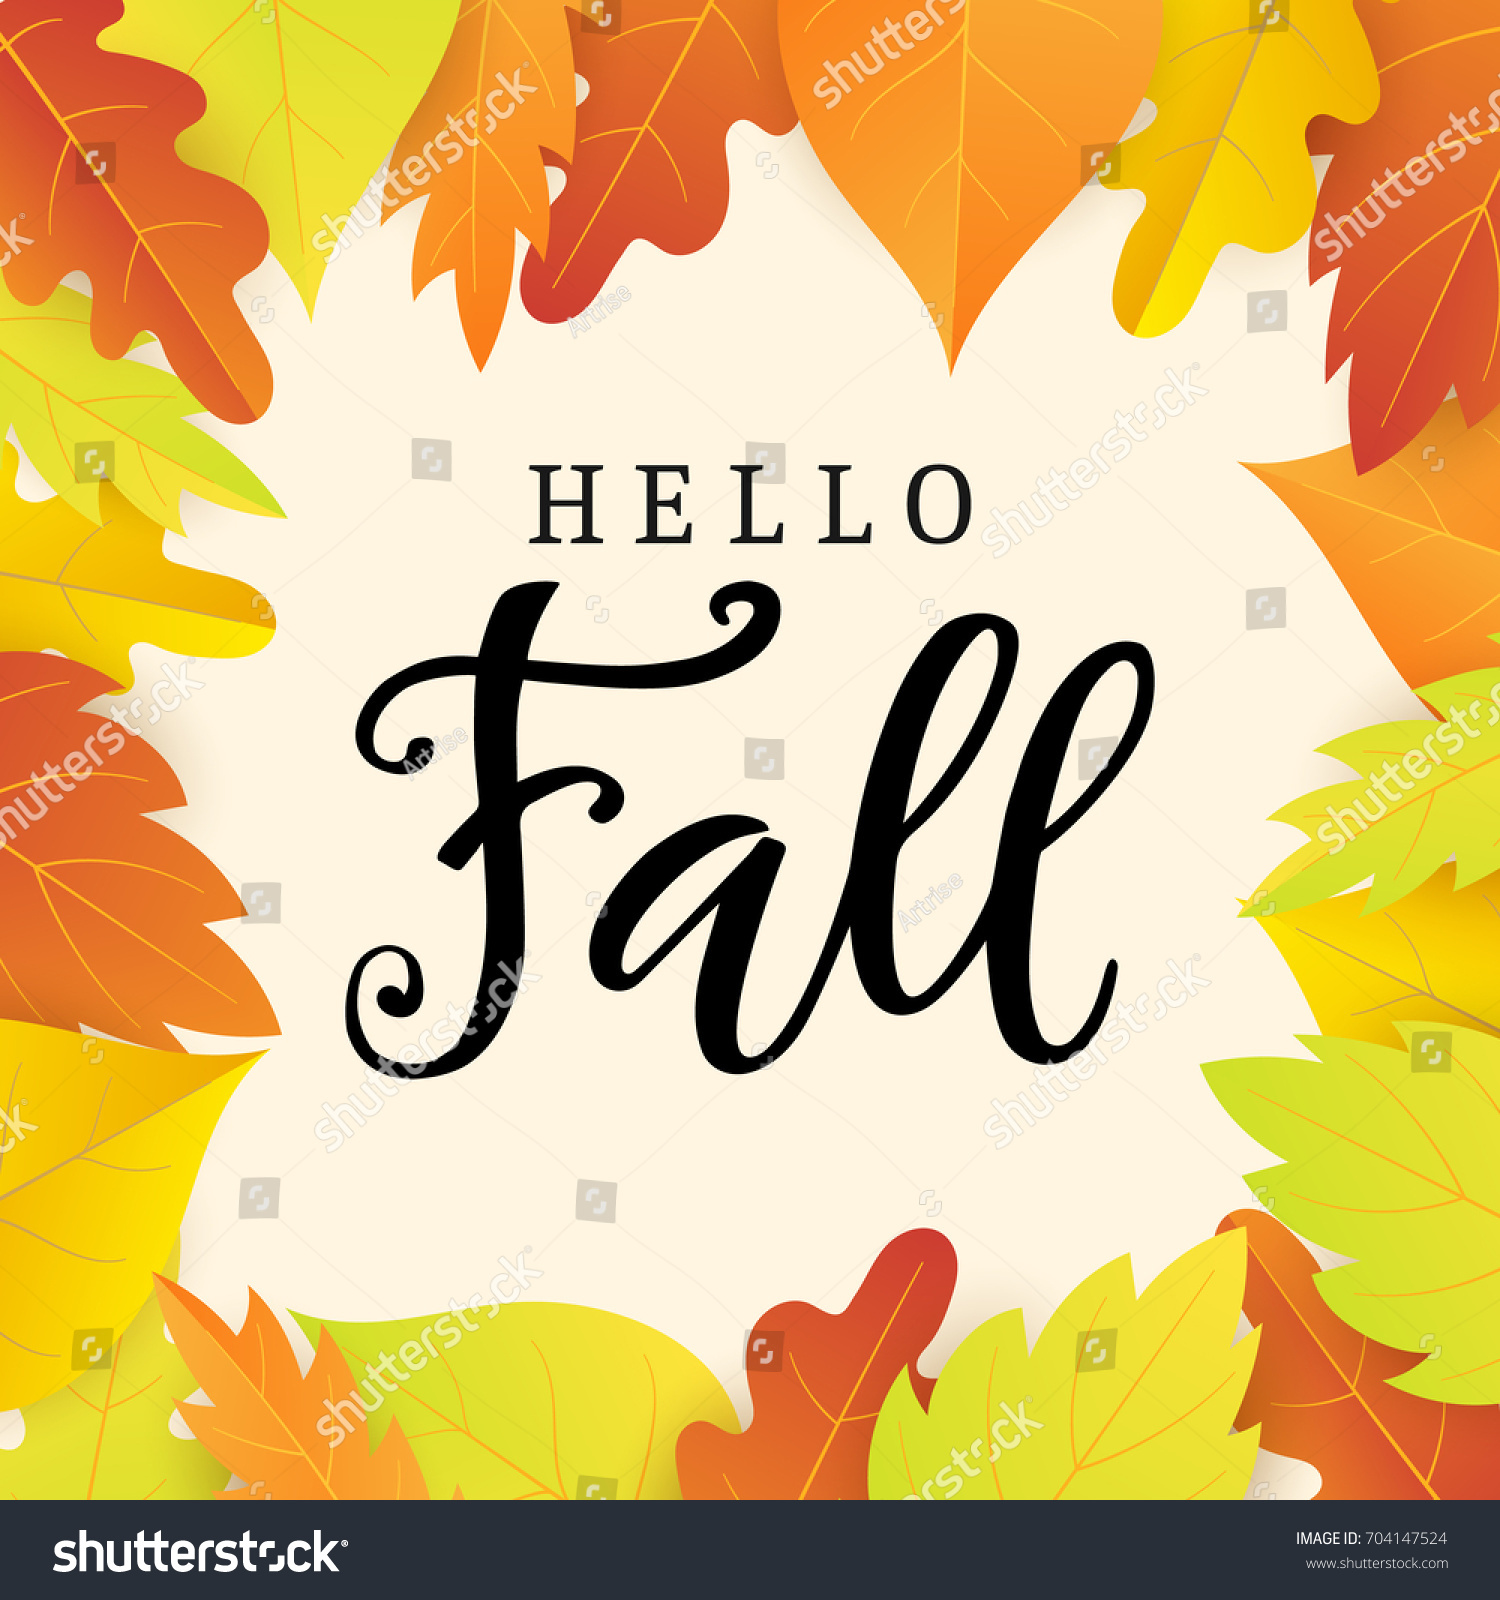 Awesome Hello Fall Banner Template With Bright Colorful Leaves. Autumn Seasonal  Calligraphy. Poster, Card